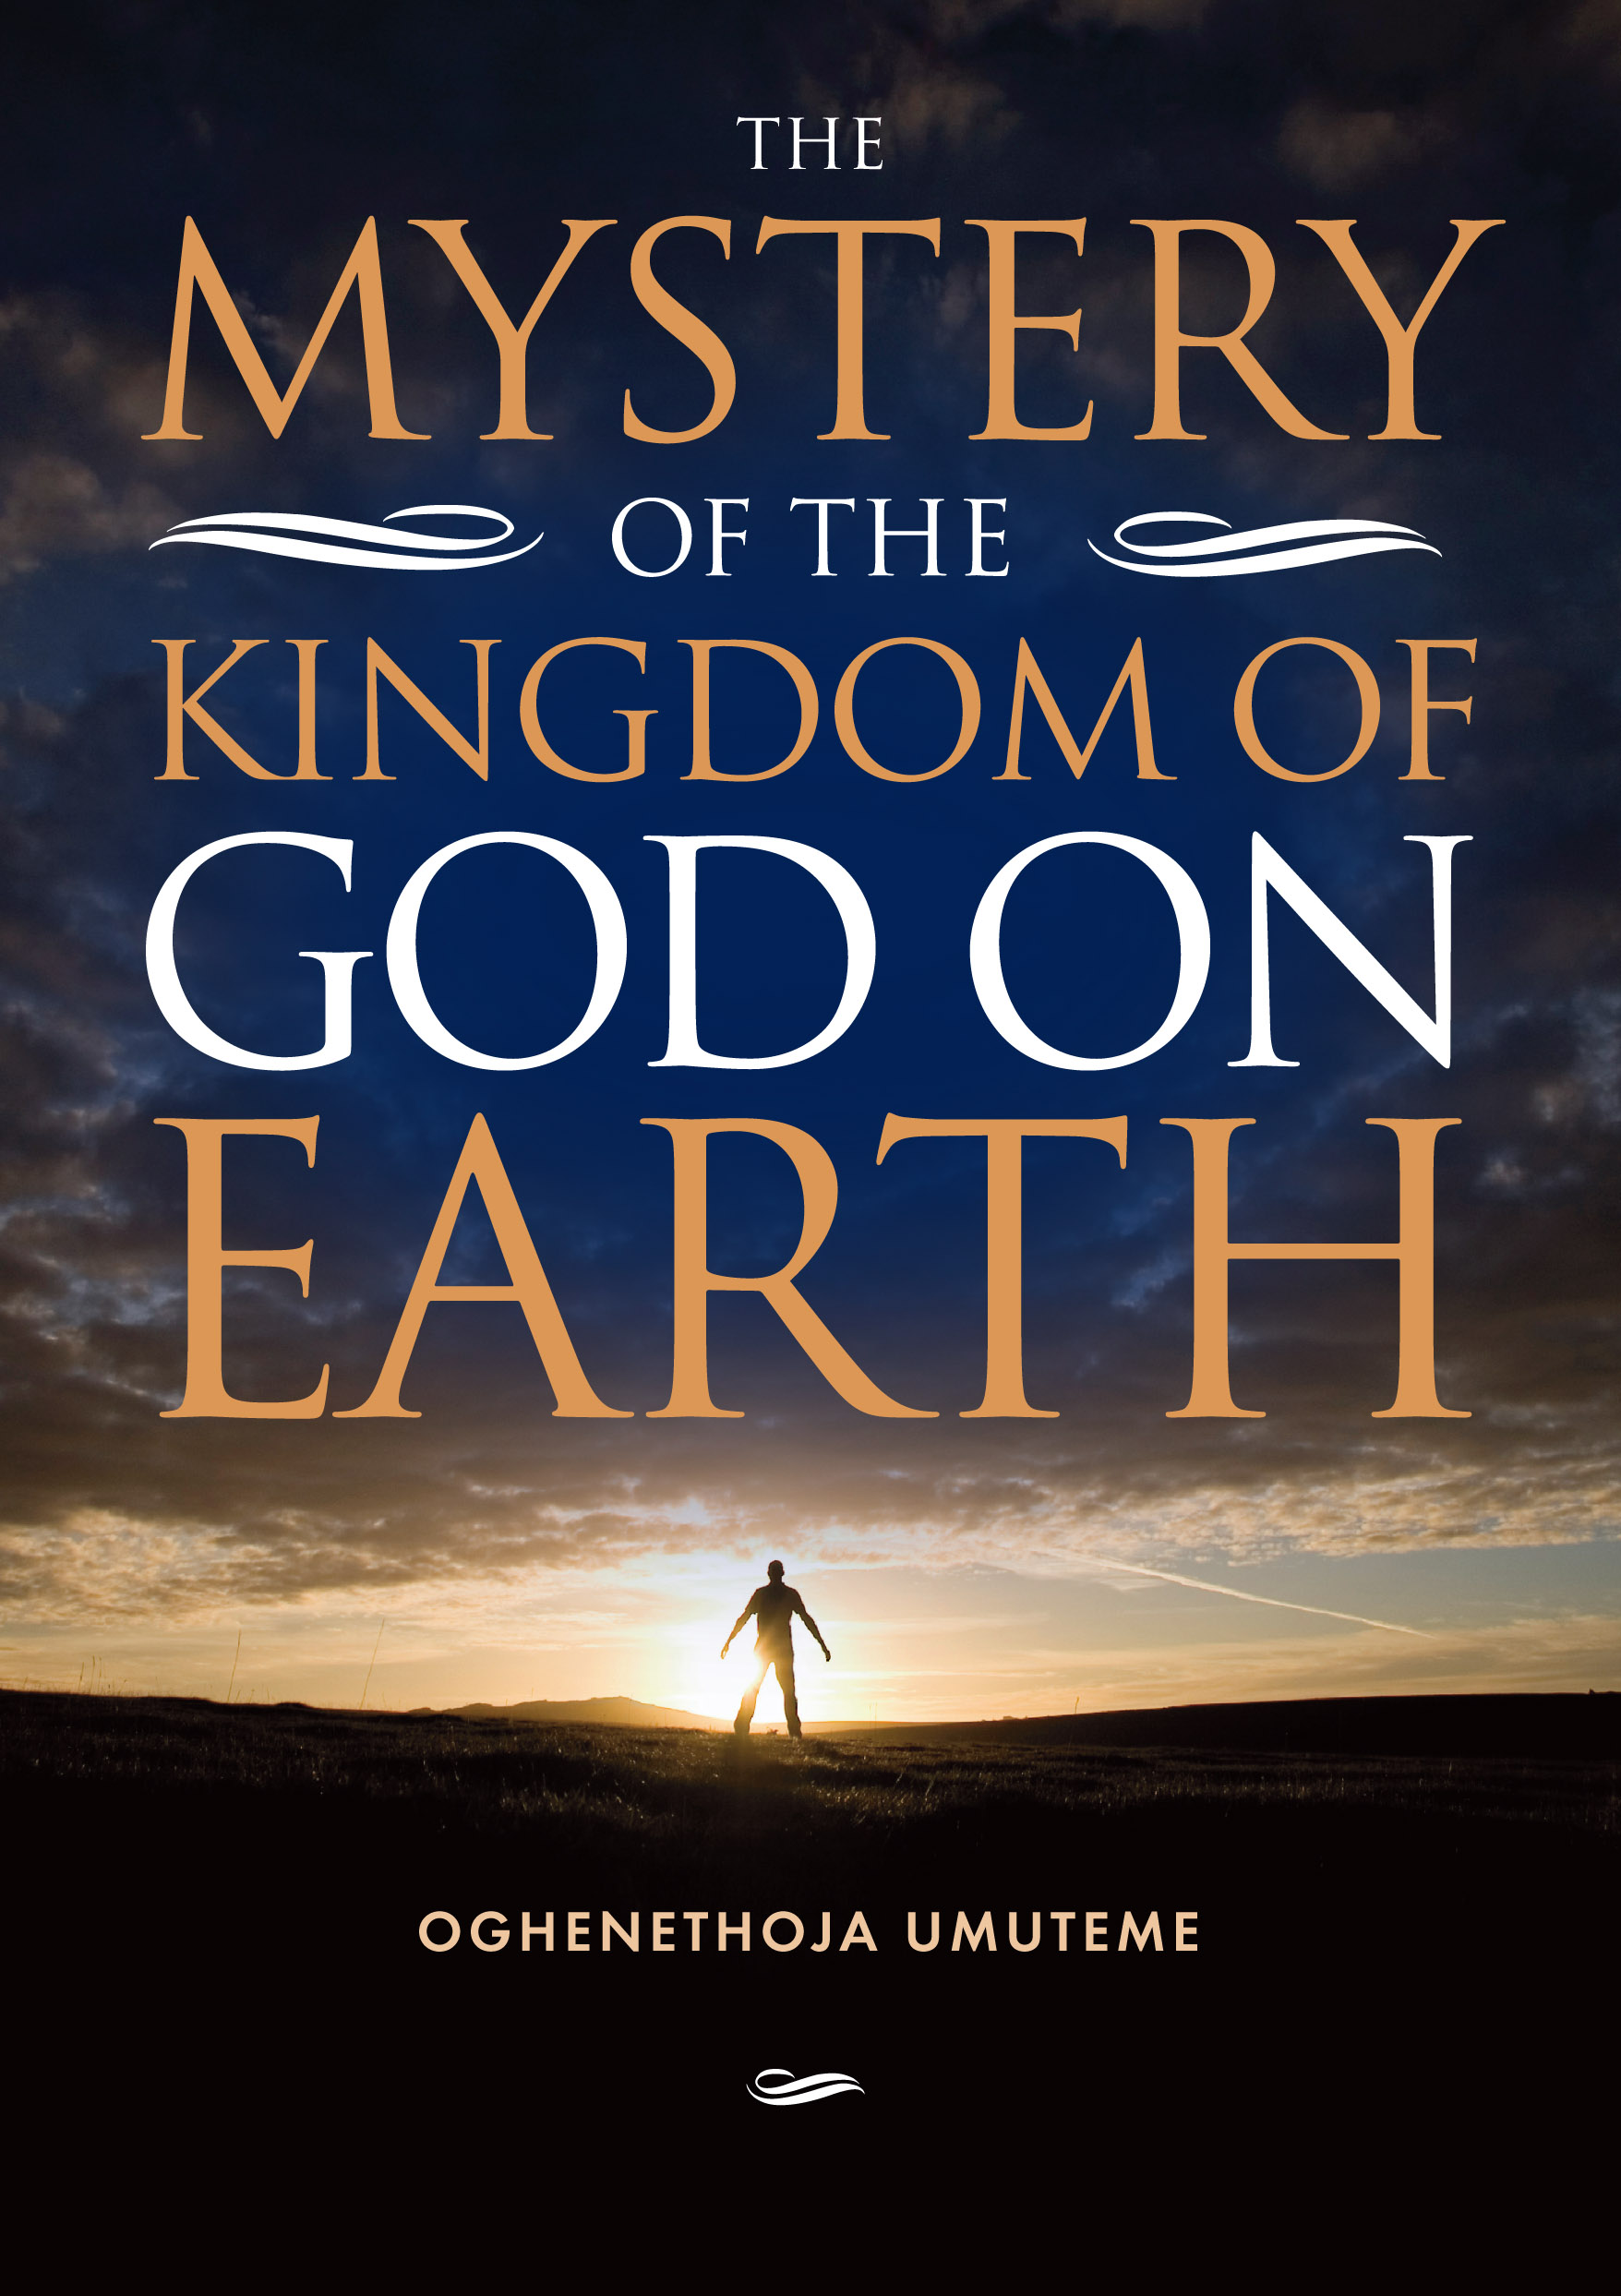 Our books: The Mystery of the Kingdom of God on Earth